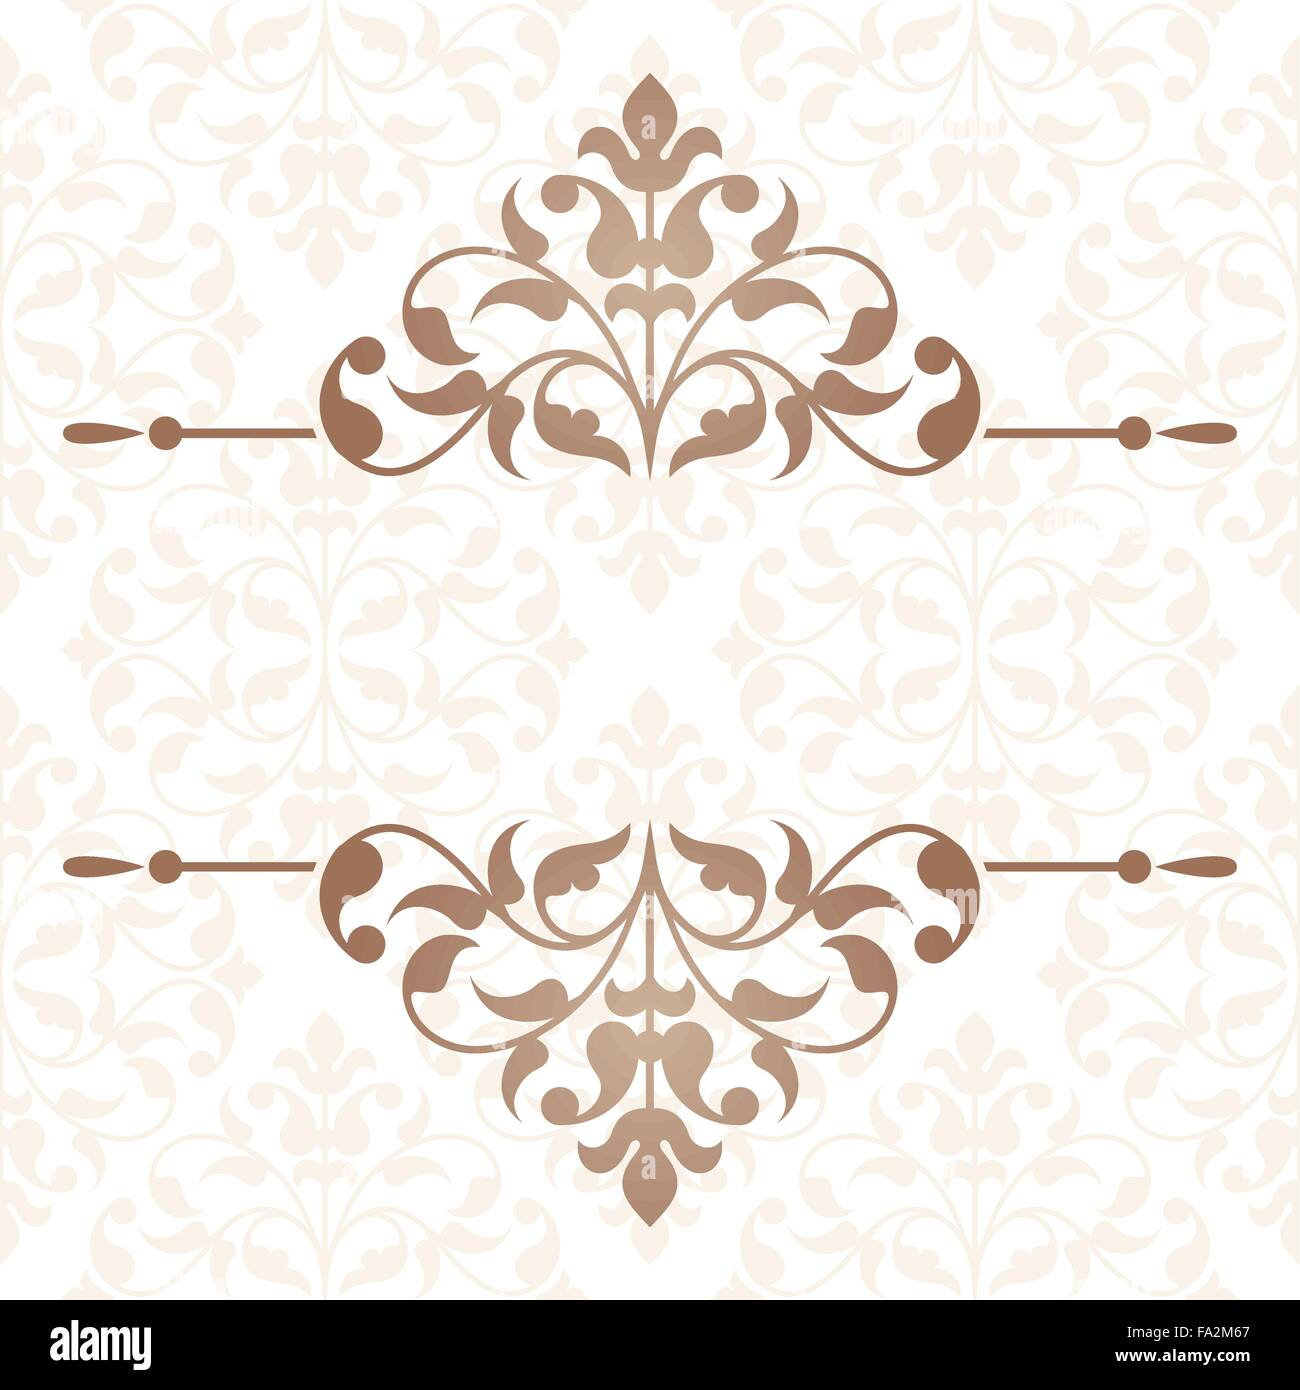 Arabic invitation card stock vector art illustration vector arabic invitation card stopboris Images